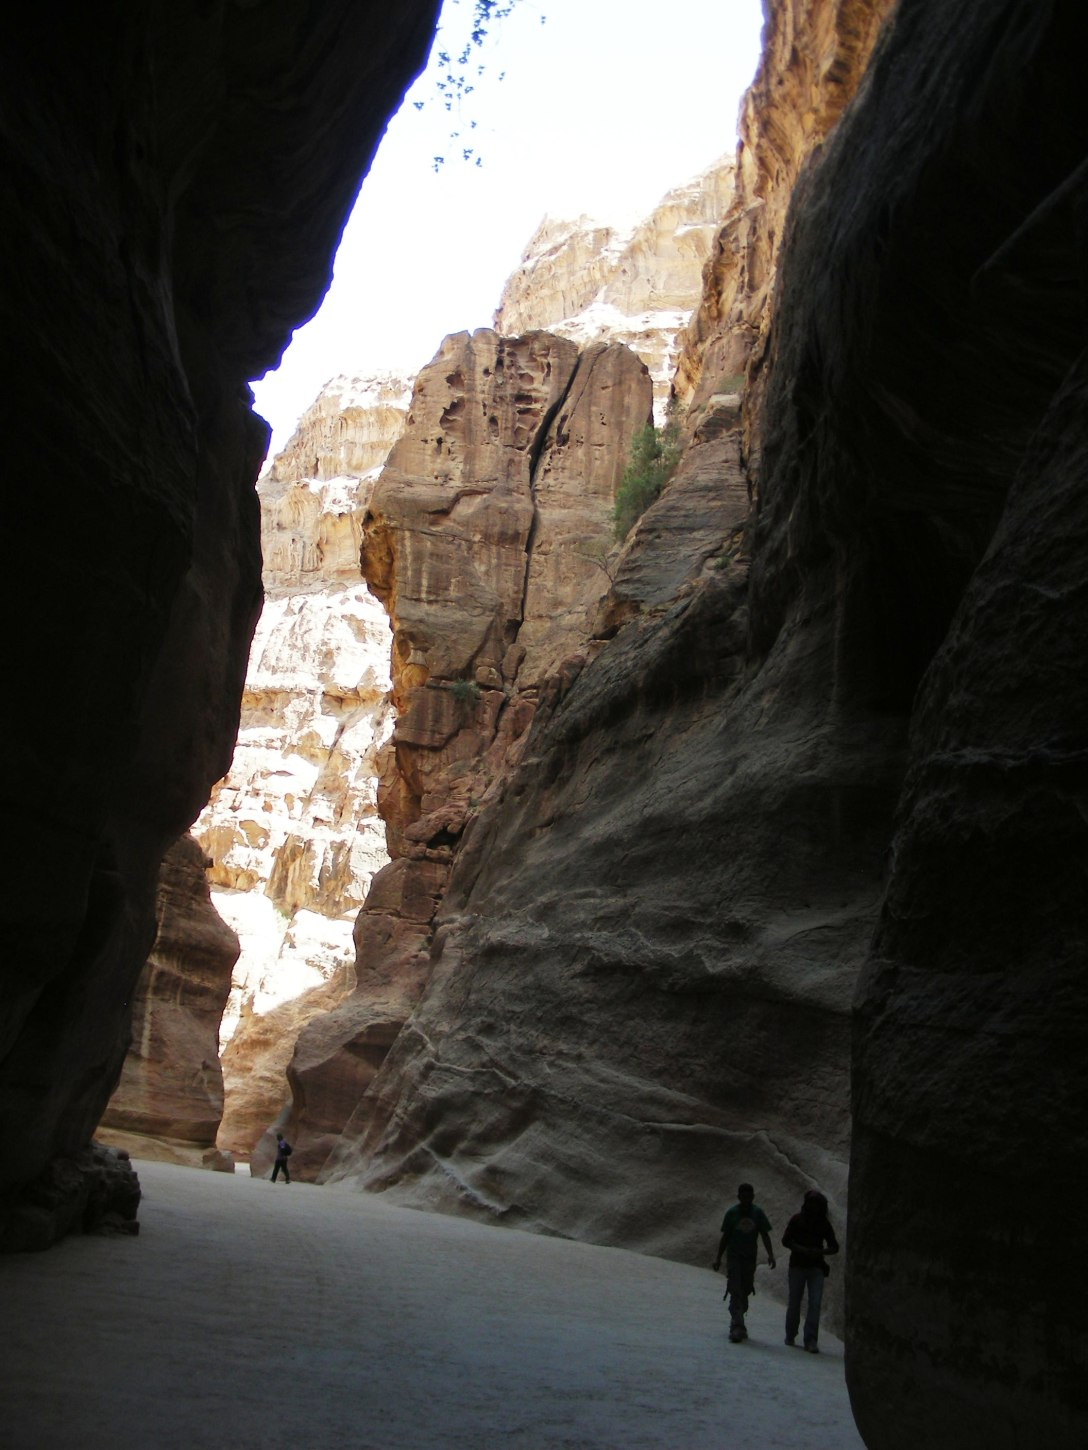 Nature's way of highlighting the essence of beauty in Petra, Jordan